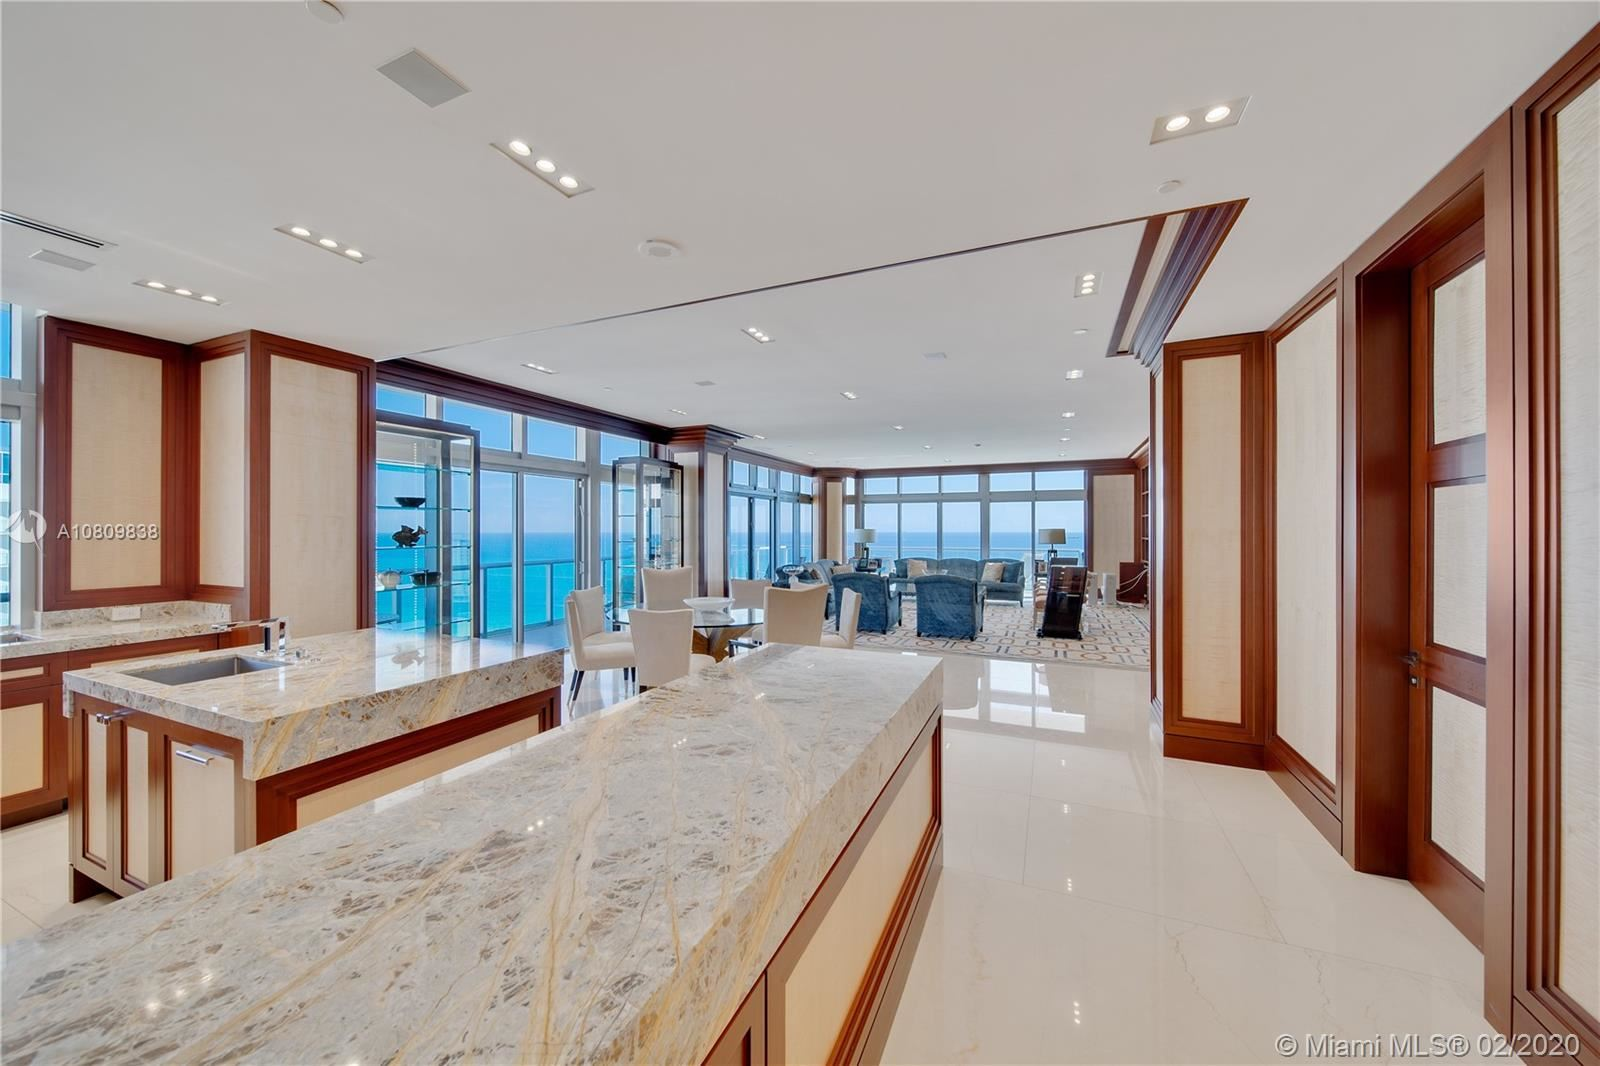 Photo 8 of Listing MLS a10809838 in 3737 Collins Ave #PH-4 Miami Beach FL 33140